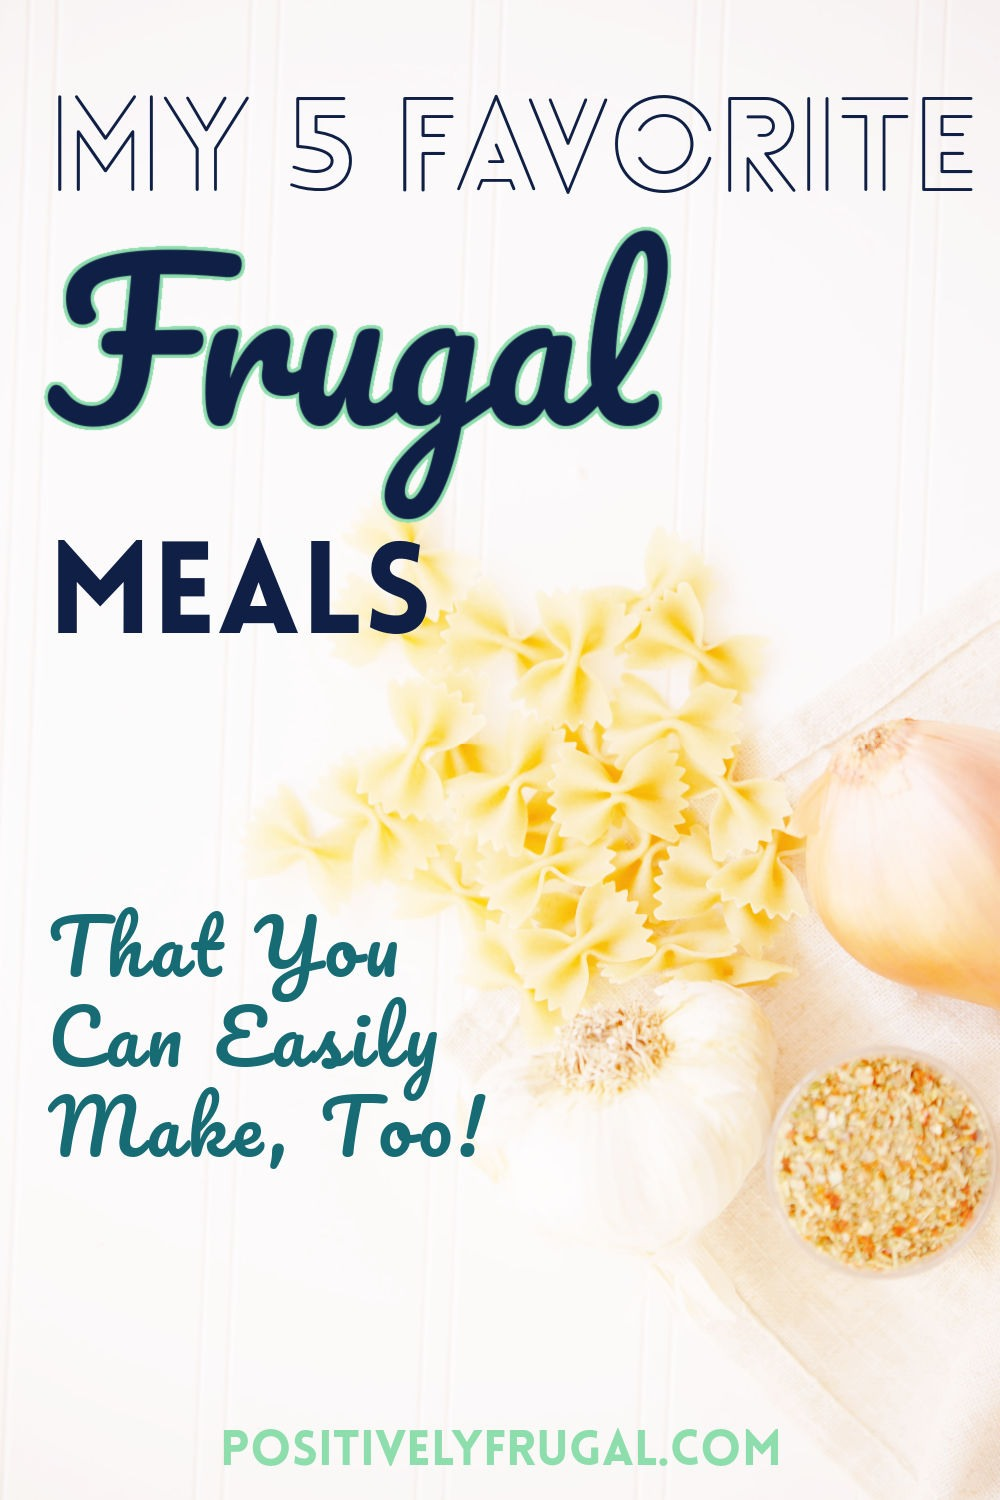 Frugal Meals that You Can Make by PositivelyFrugal.com